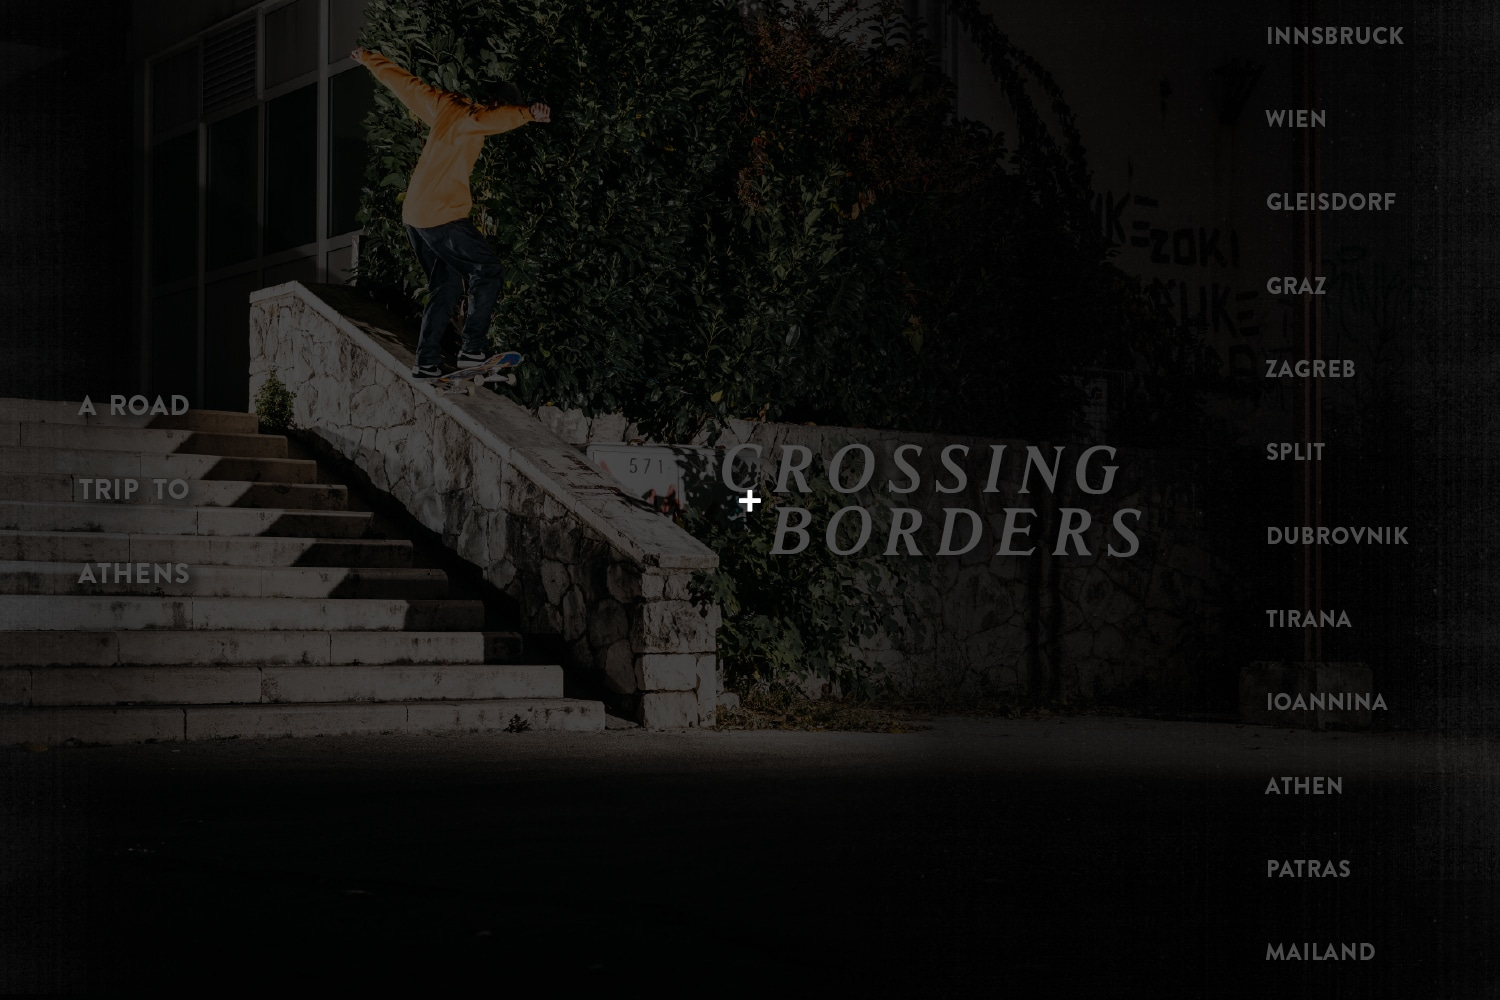 crossing-borders-hover